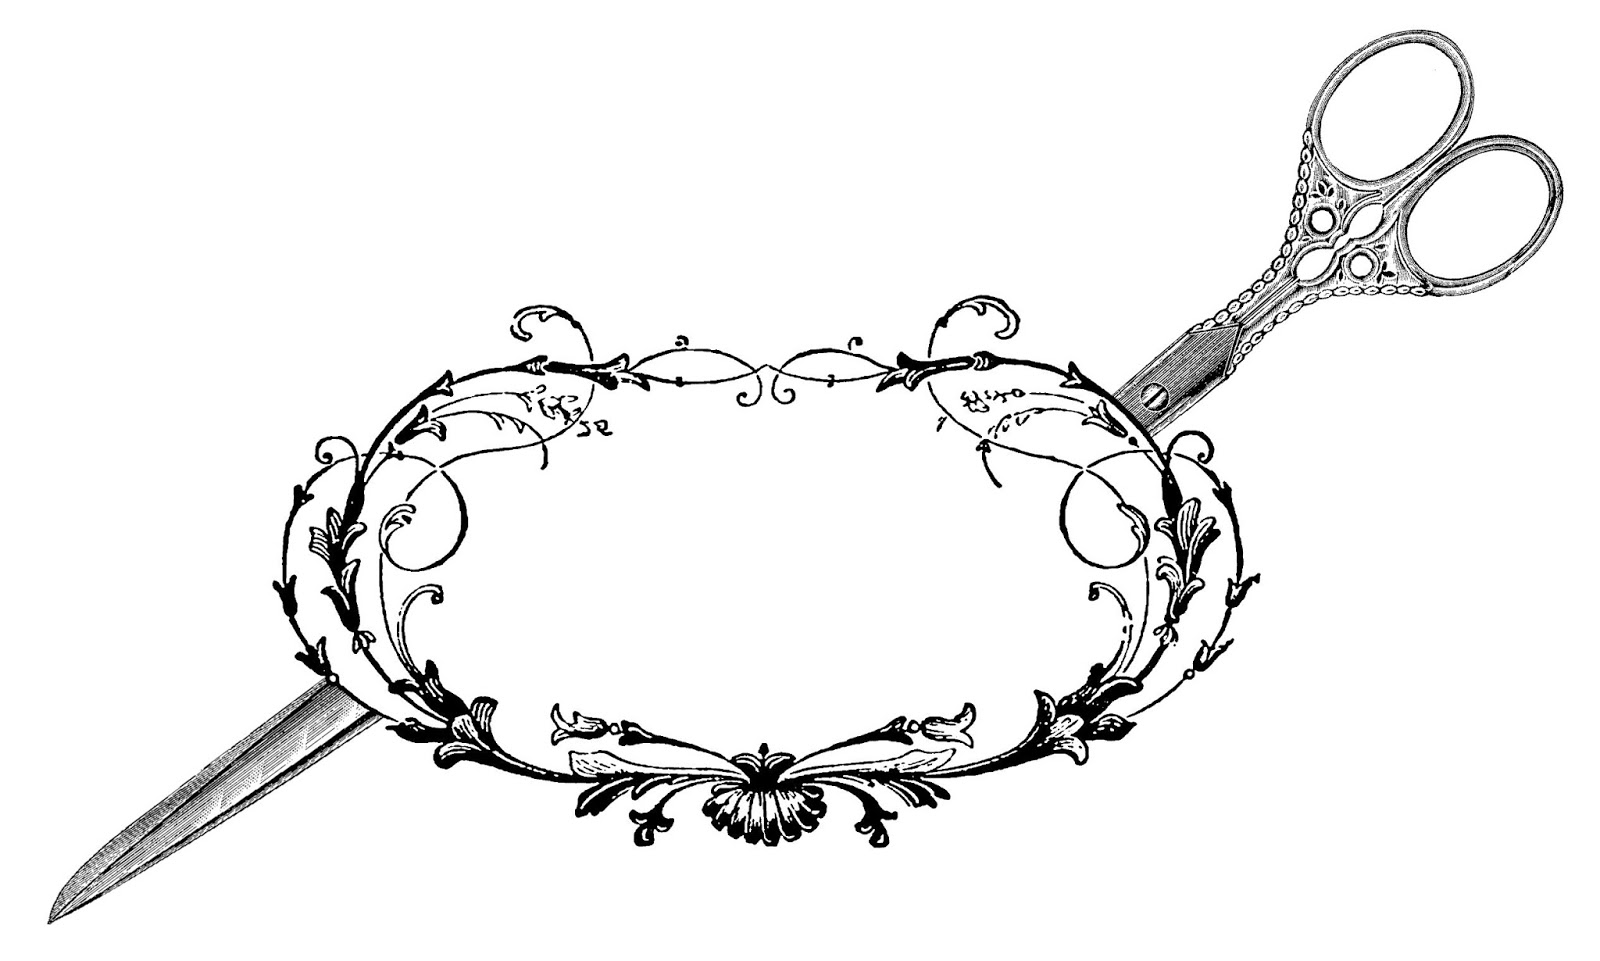 The Graphics Monarch Sewing Scissors Decorative Frame